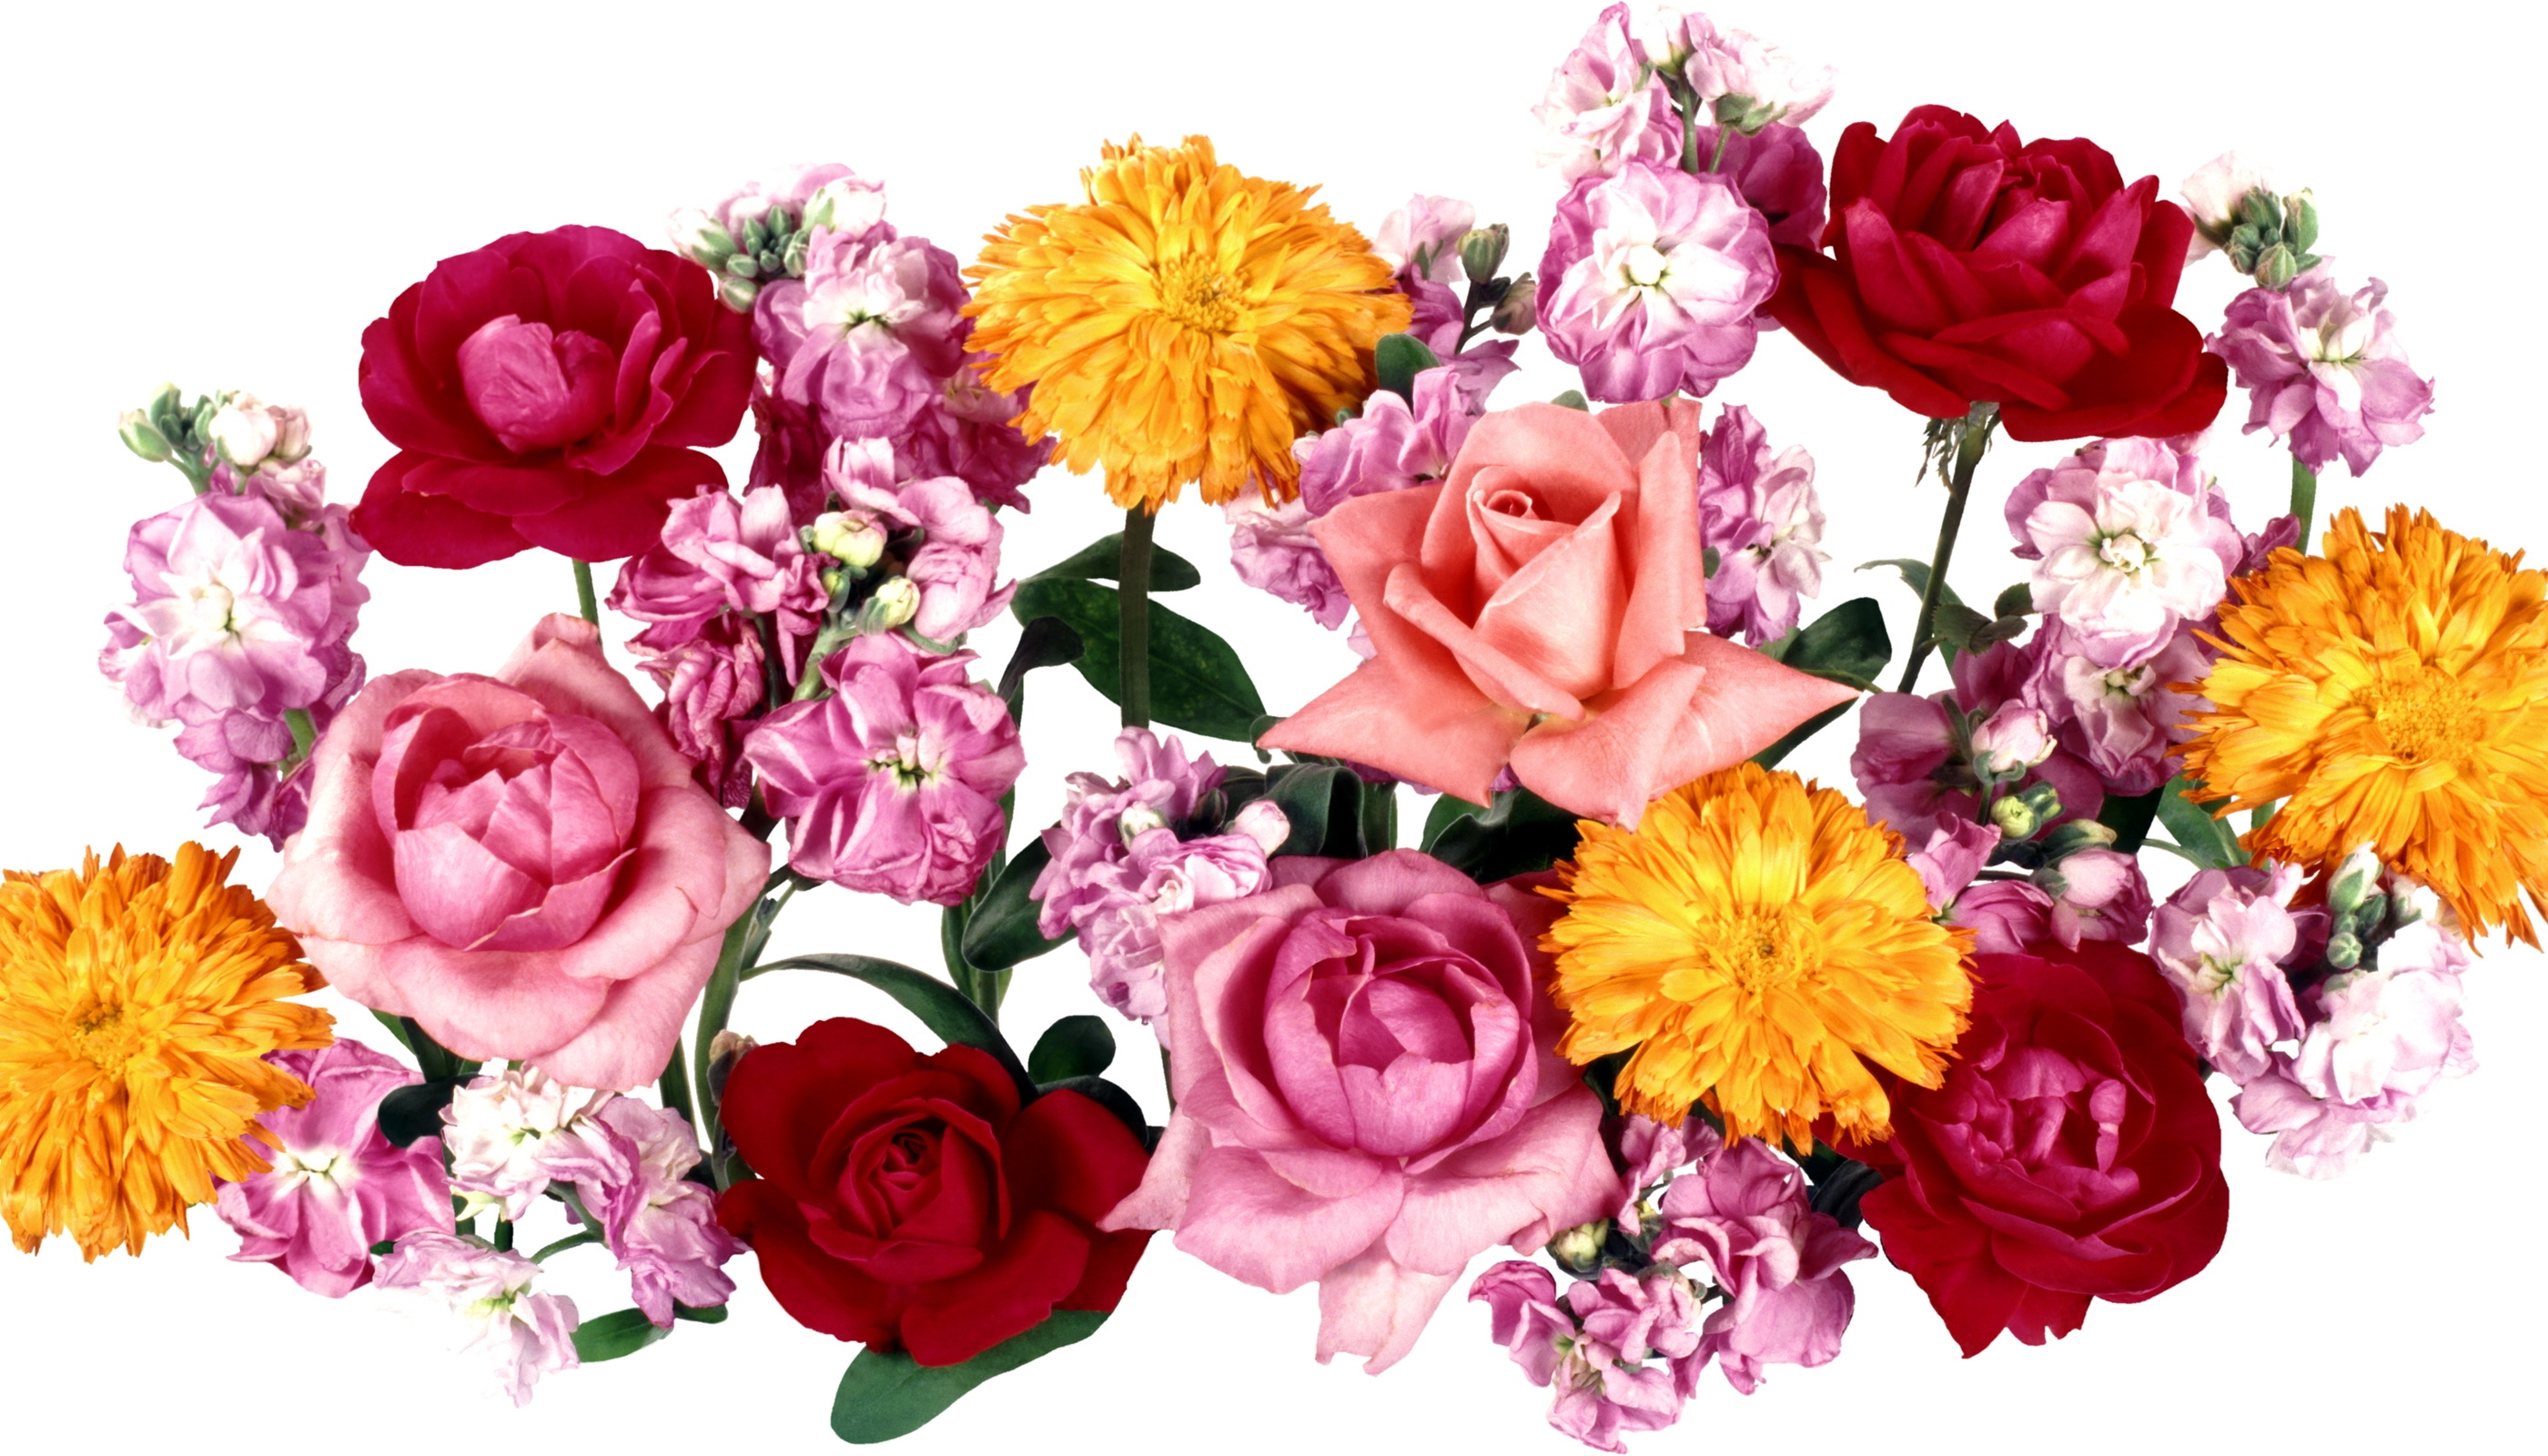 flowers-pink-magenta-chrysanthemums-flower-plant-roses-petal-peony-song-land-plant-flowering-plant-floristry-flower-bouquet-flower-arranging-floral-design-cut-flowers-artificial-flower-717812